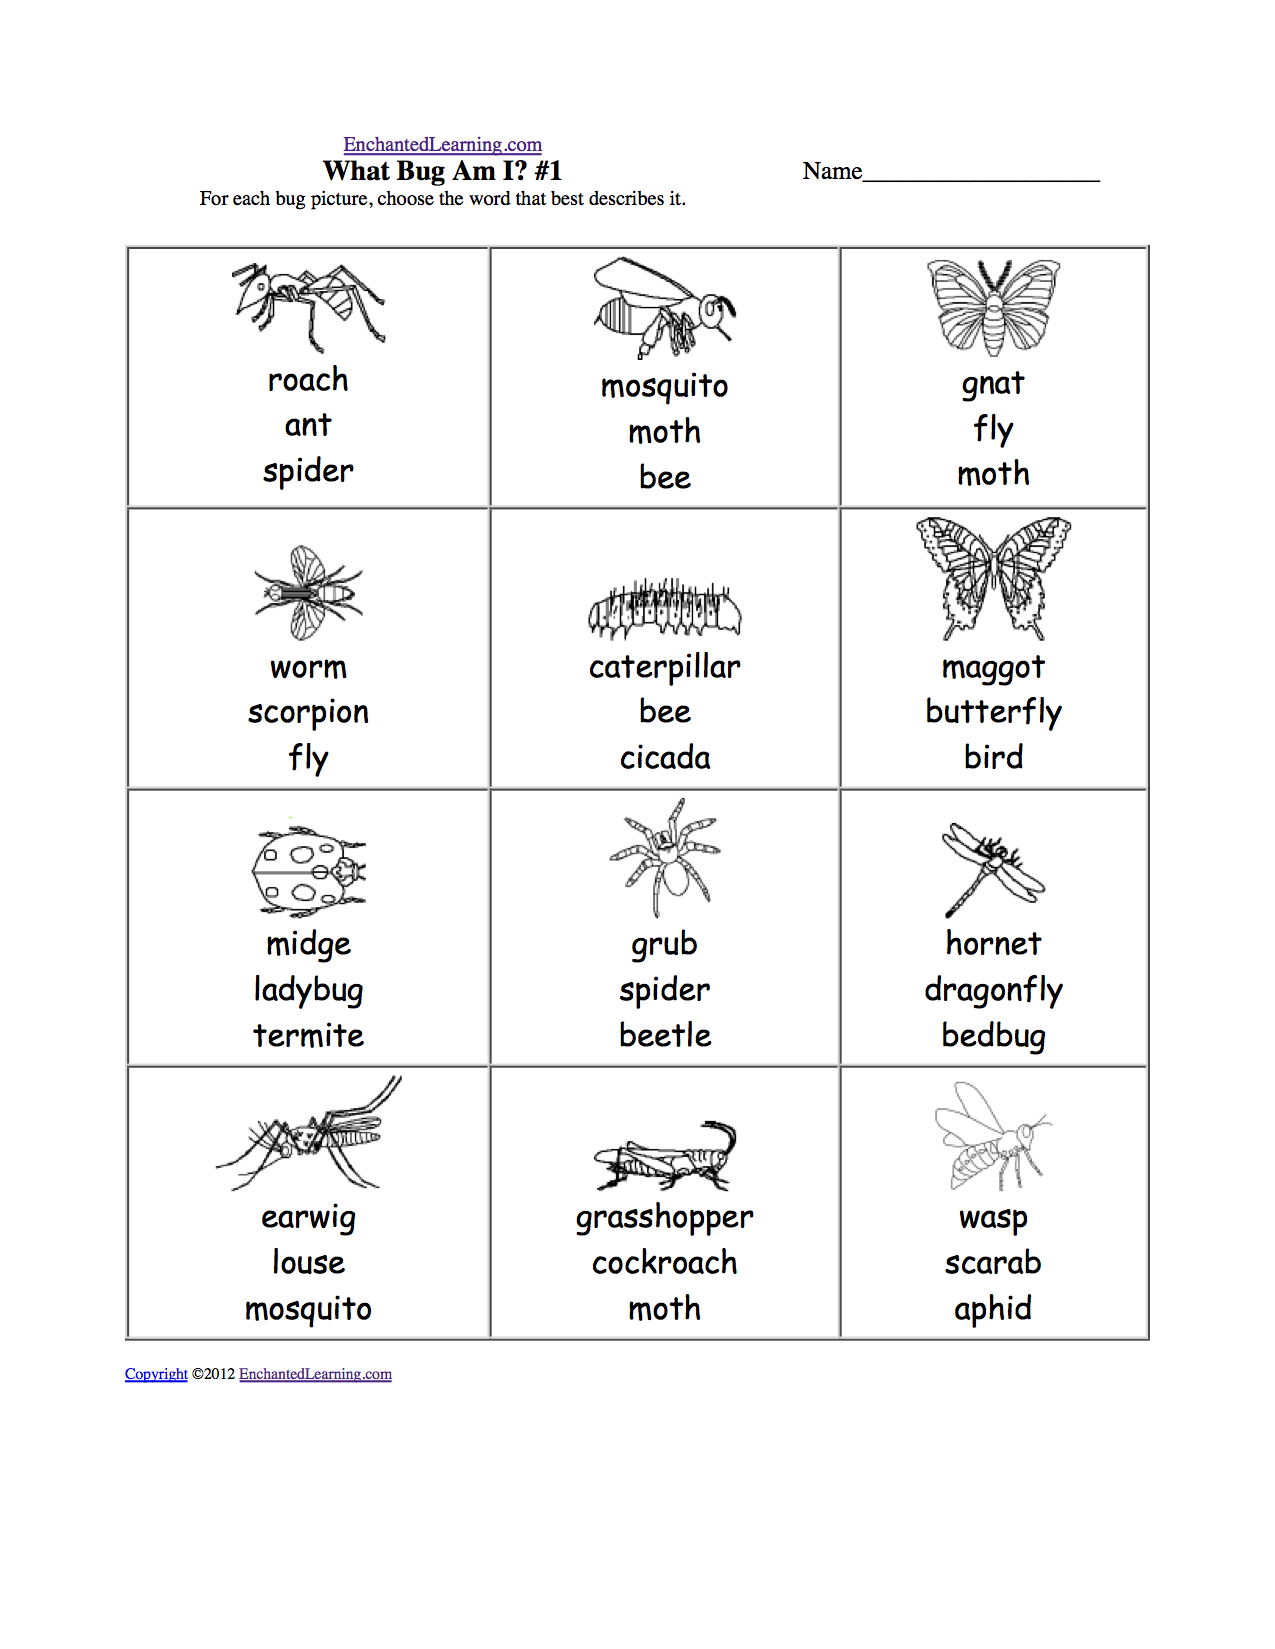 Aldiablosus  Nice What Am I Worksheet Printouts  Enchantedlearningcom With Engaging Atoms And Elements Worksheets Besides Identifying Lab Equipment Worksheet Furthermore One Survivor Remembers Worksheet With Alluring St Grade Worksheets Math Also Problem Solving Strategies Worksheet In Addition Printable Worksheets For Rd Graders And Everyday Mathematics Grade  Worksheets As Well As Erie Canal Worksheets Additionally Syllogism Worksheet From Enchantedlearningcom With Aldiablosus  Engaging What Am I Worksheet Printouts  Enchantedlearningcom With Alluring Atoms And Elements Worksheets Besides Identifying Lab Equipment Worksheet Furthermore One Survivor Remembers Worksheet And Nice St Grade Worksheets Math Also Problem Solving Strategies Worksheet In Addition Printable Worksheets For Rd Graders From Enchantedlearningcom